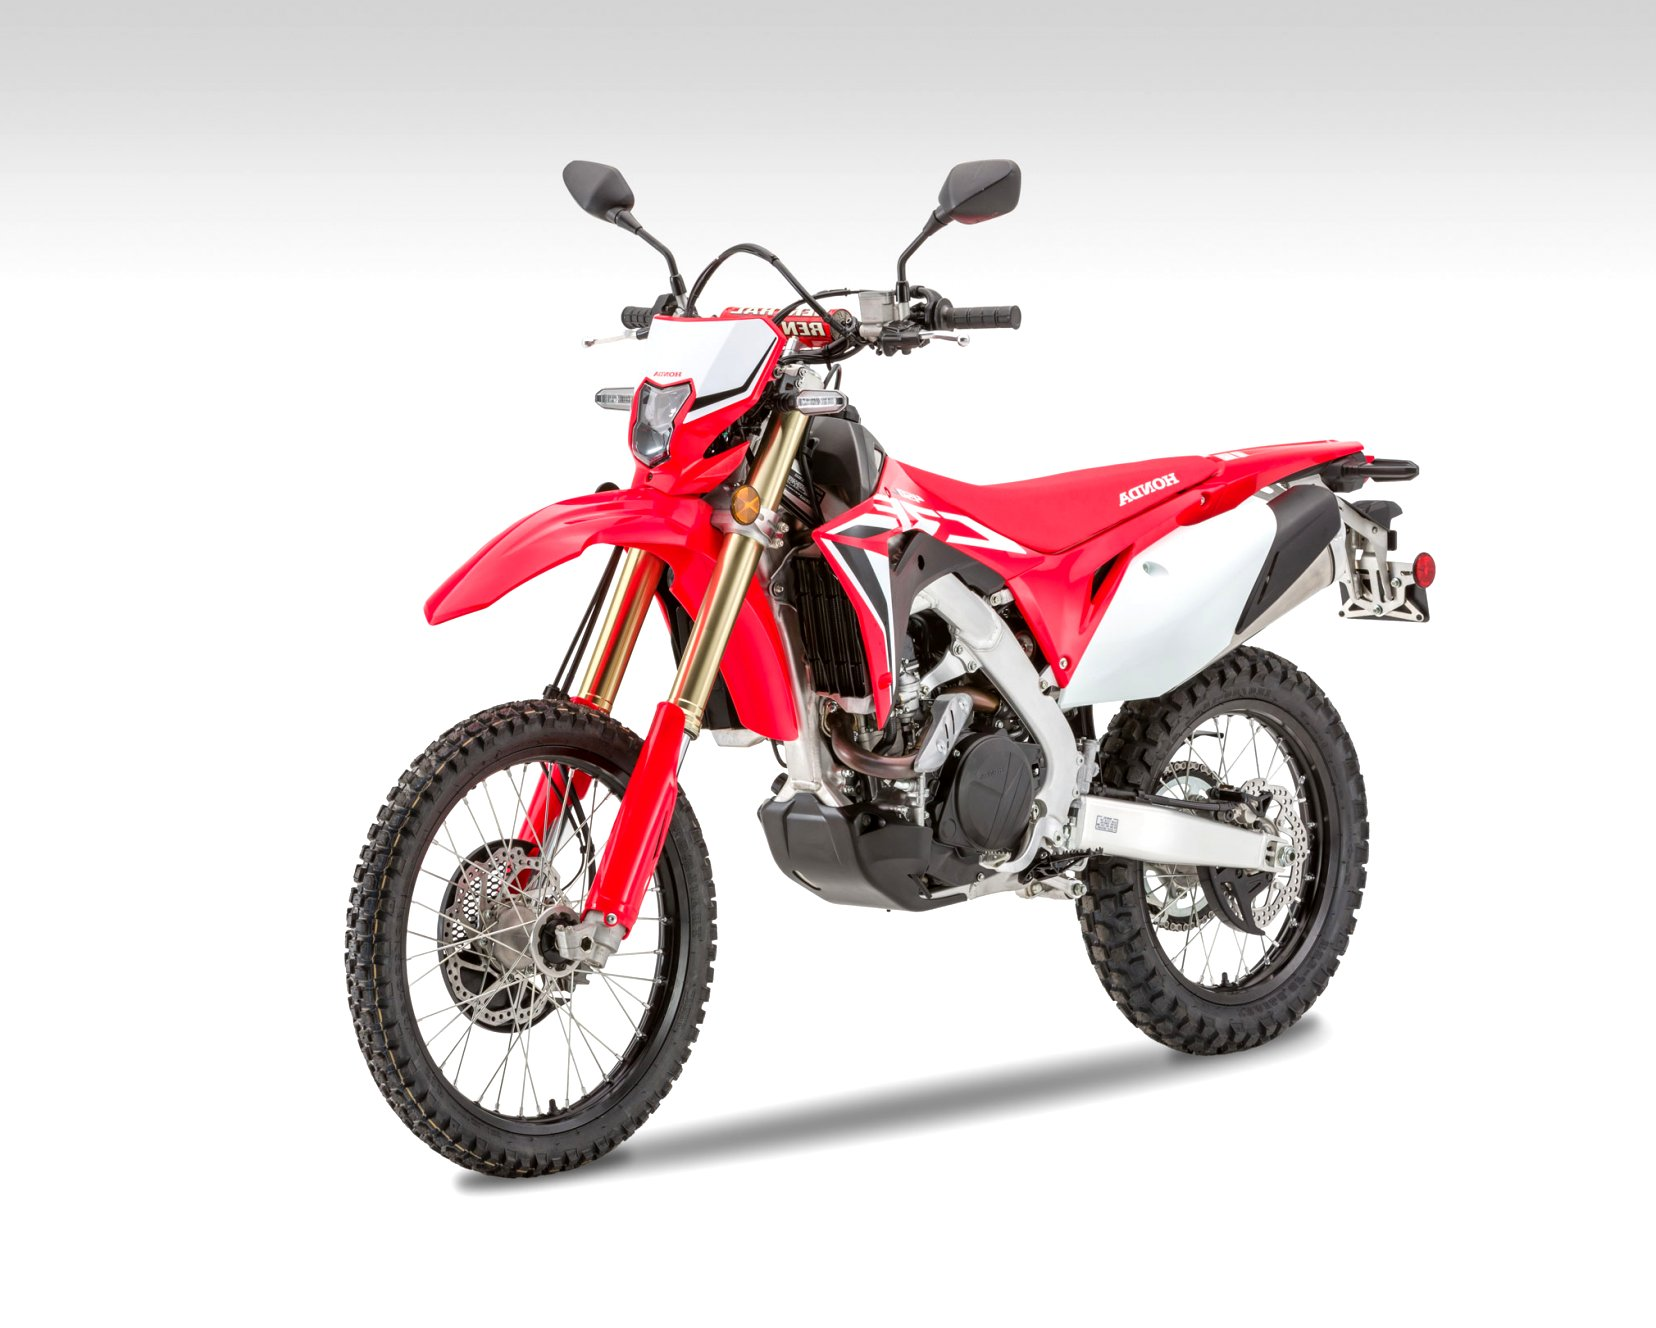 2020 honda dual sport Release Date and Concept